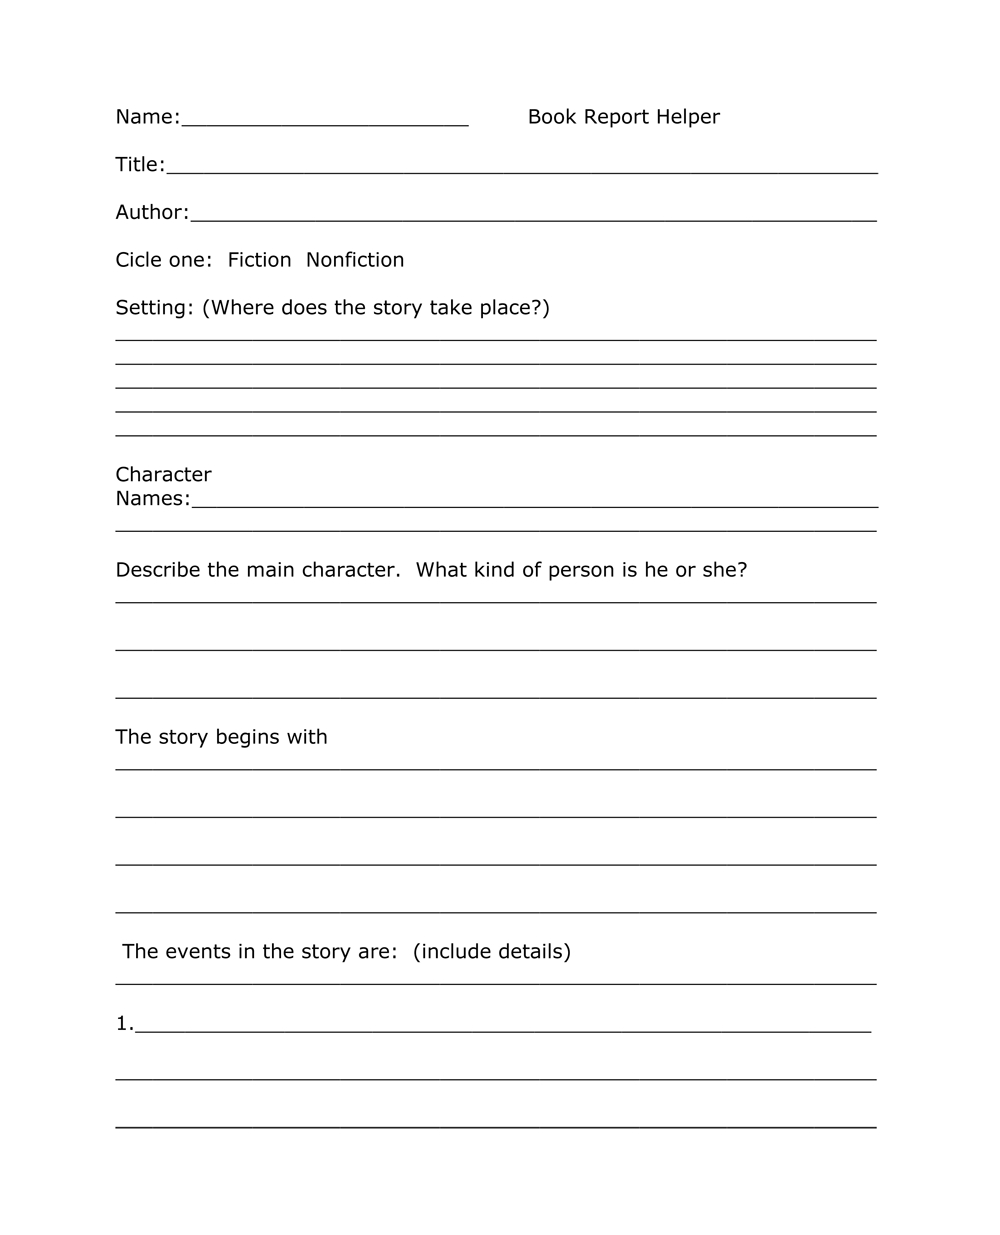 Book Report Templates From Custom Writing Service In One Page Book Report Template